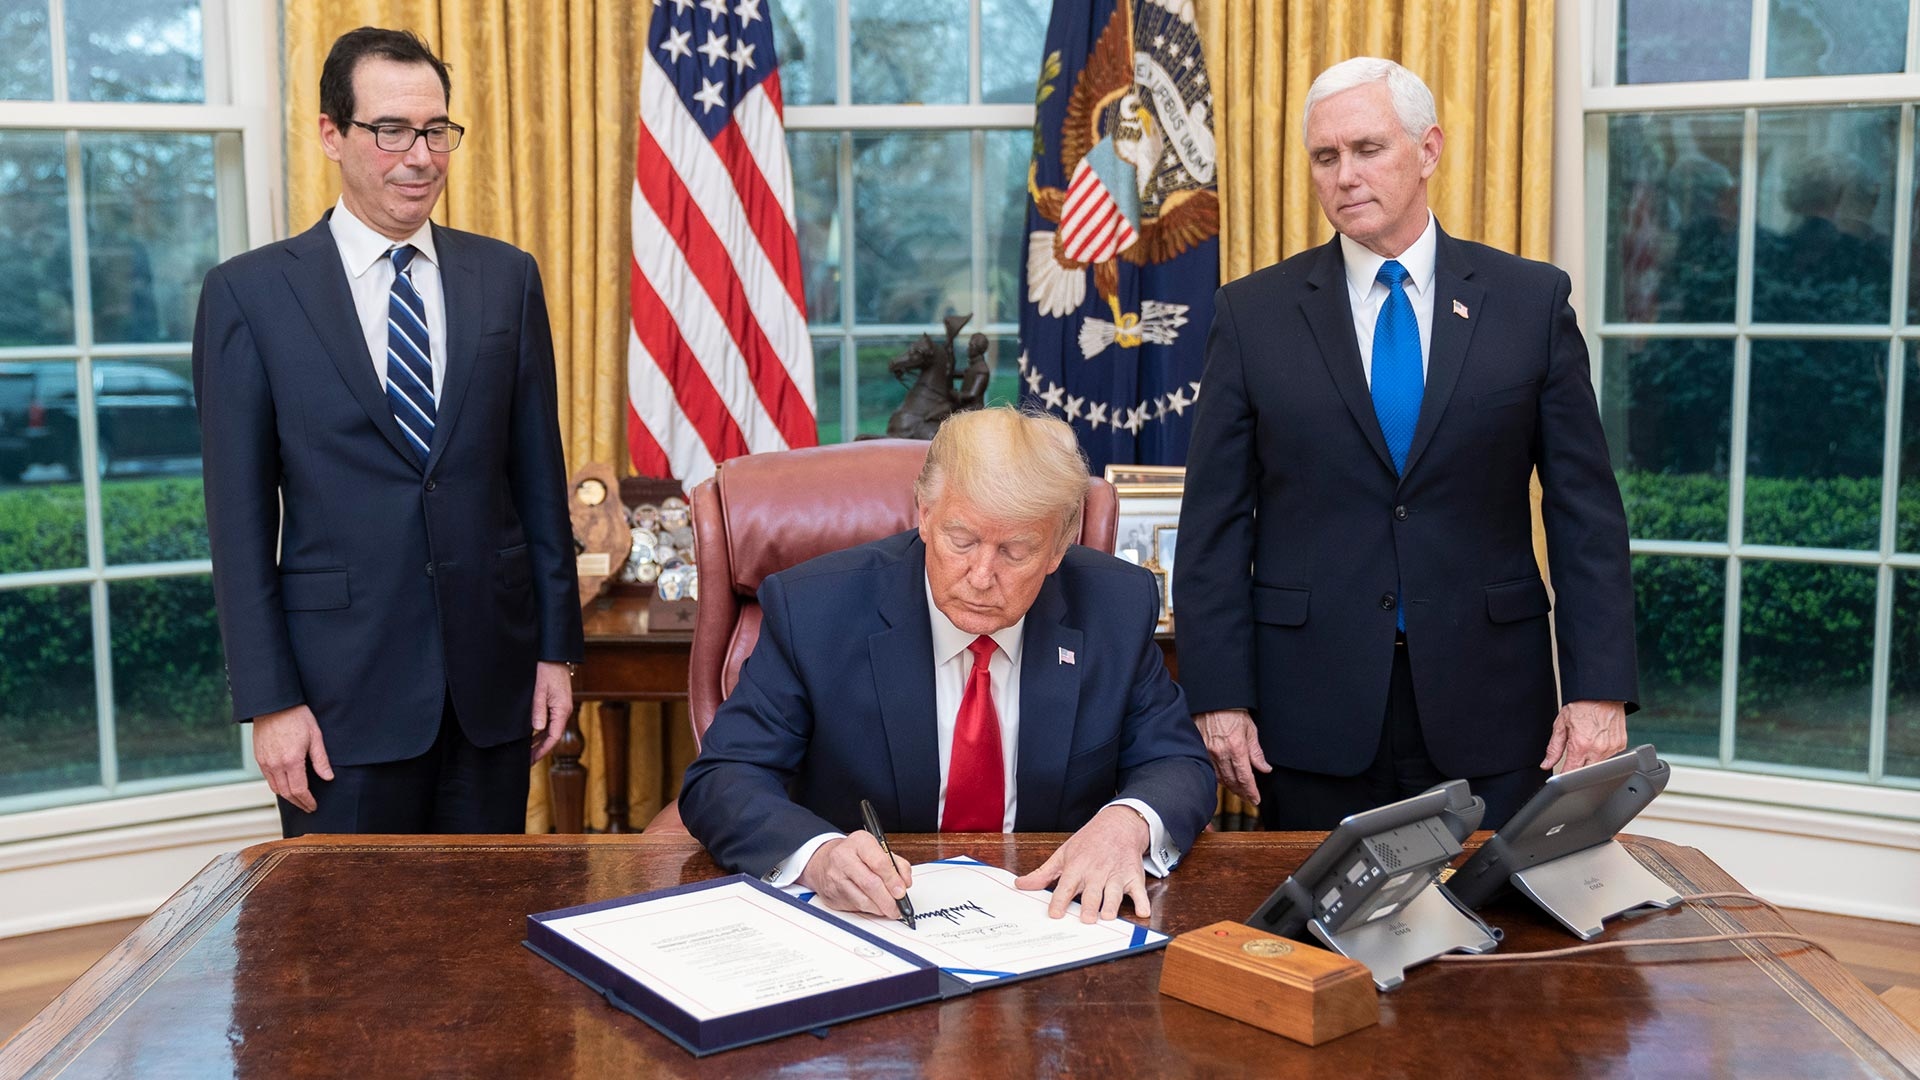 President Trump Signs Care Act